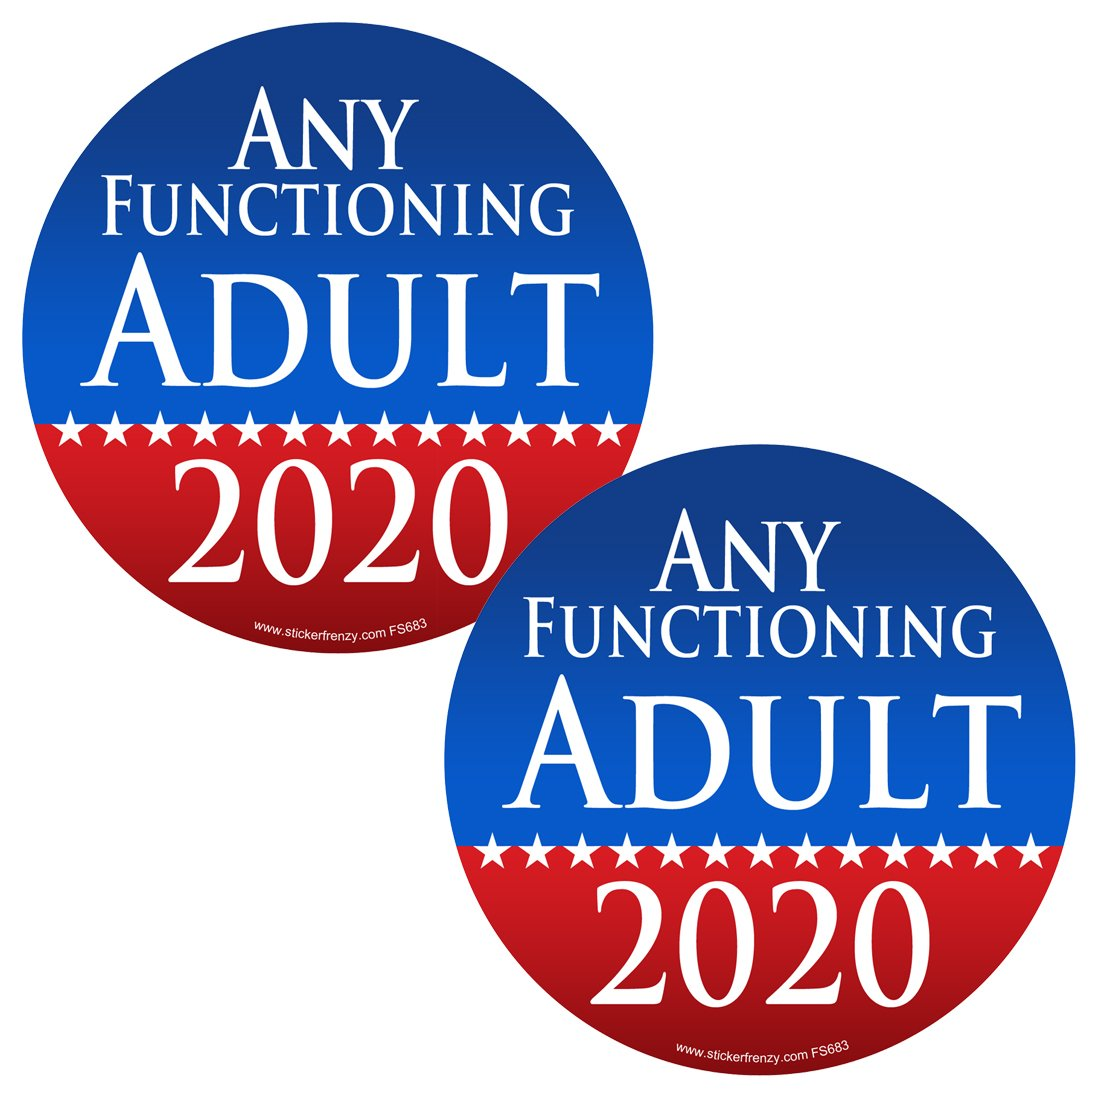 Az house of graphics 2 pack round any functioning adult 2020 2 pack stickers fs683 laminated political funny bumper car truck window election vinyl